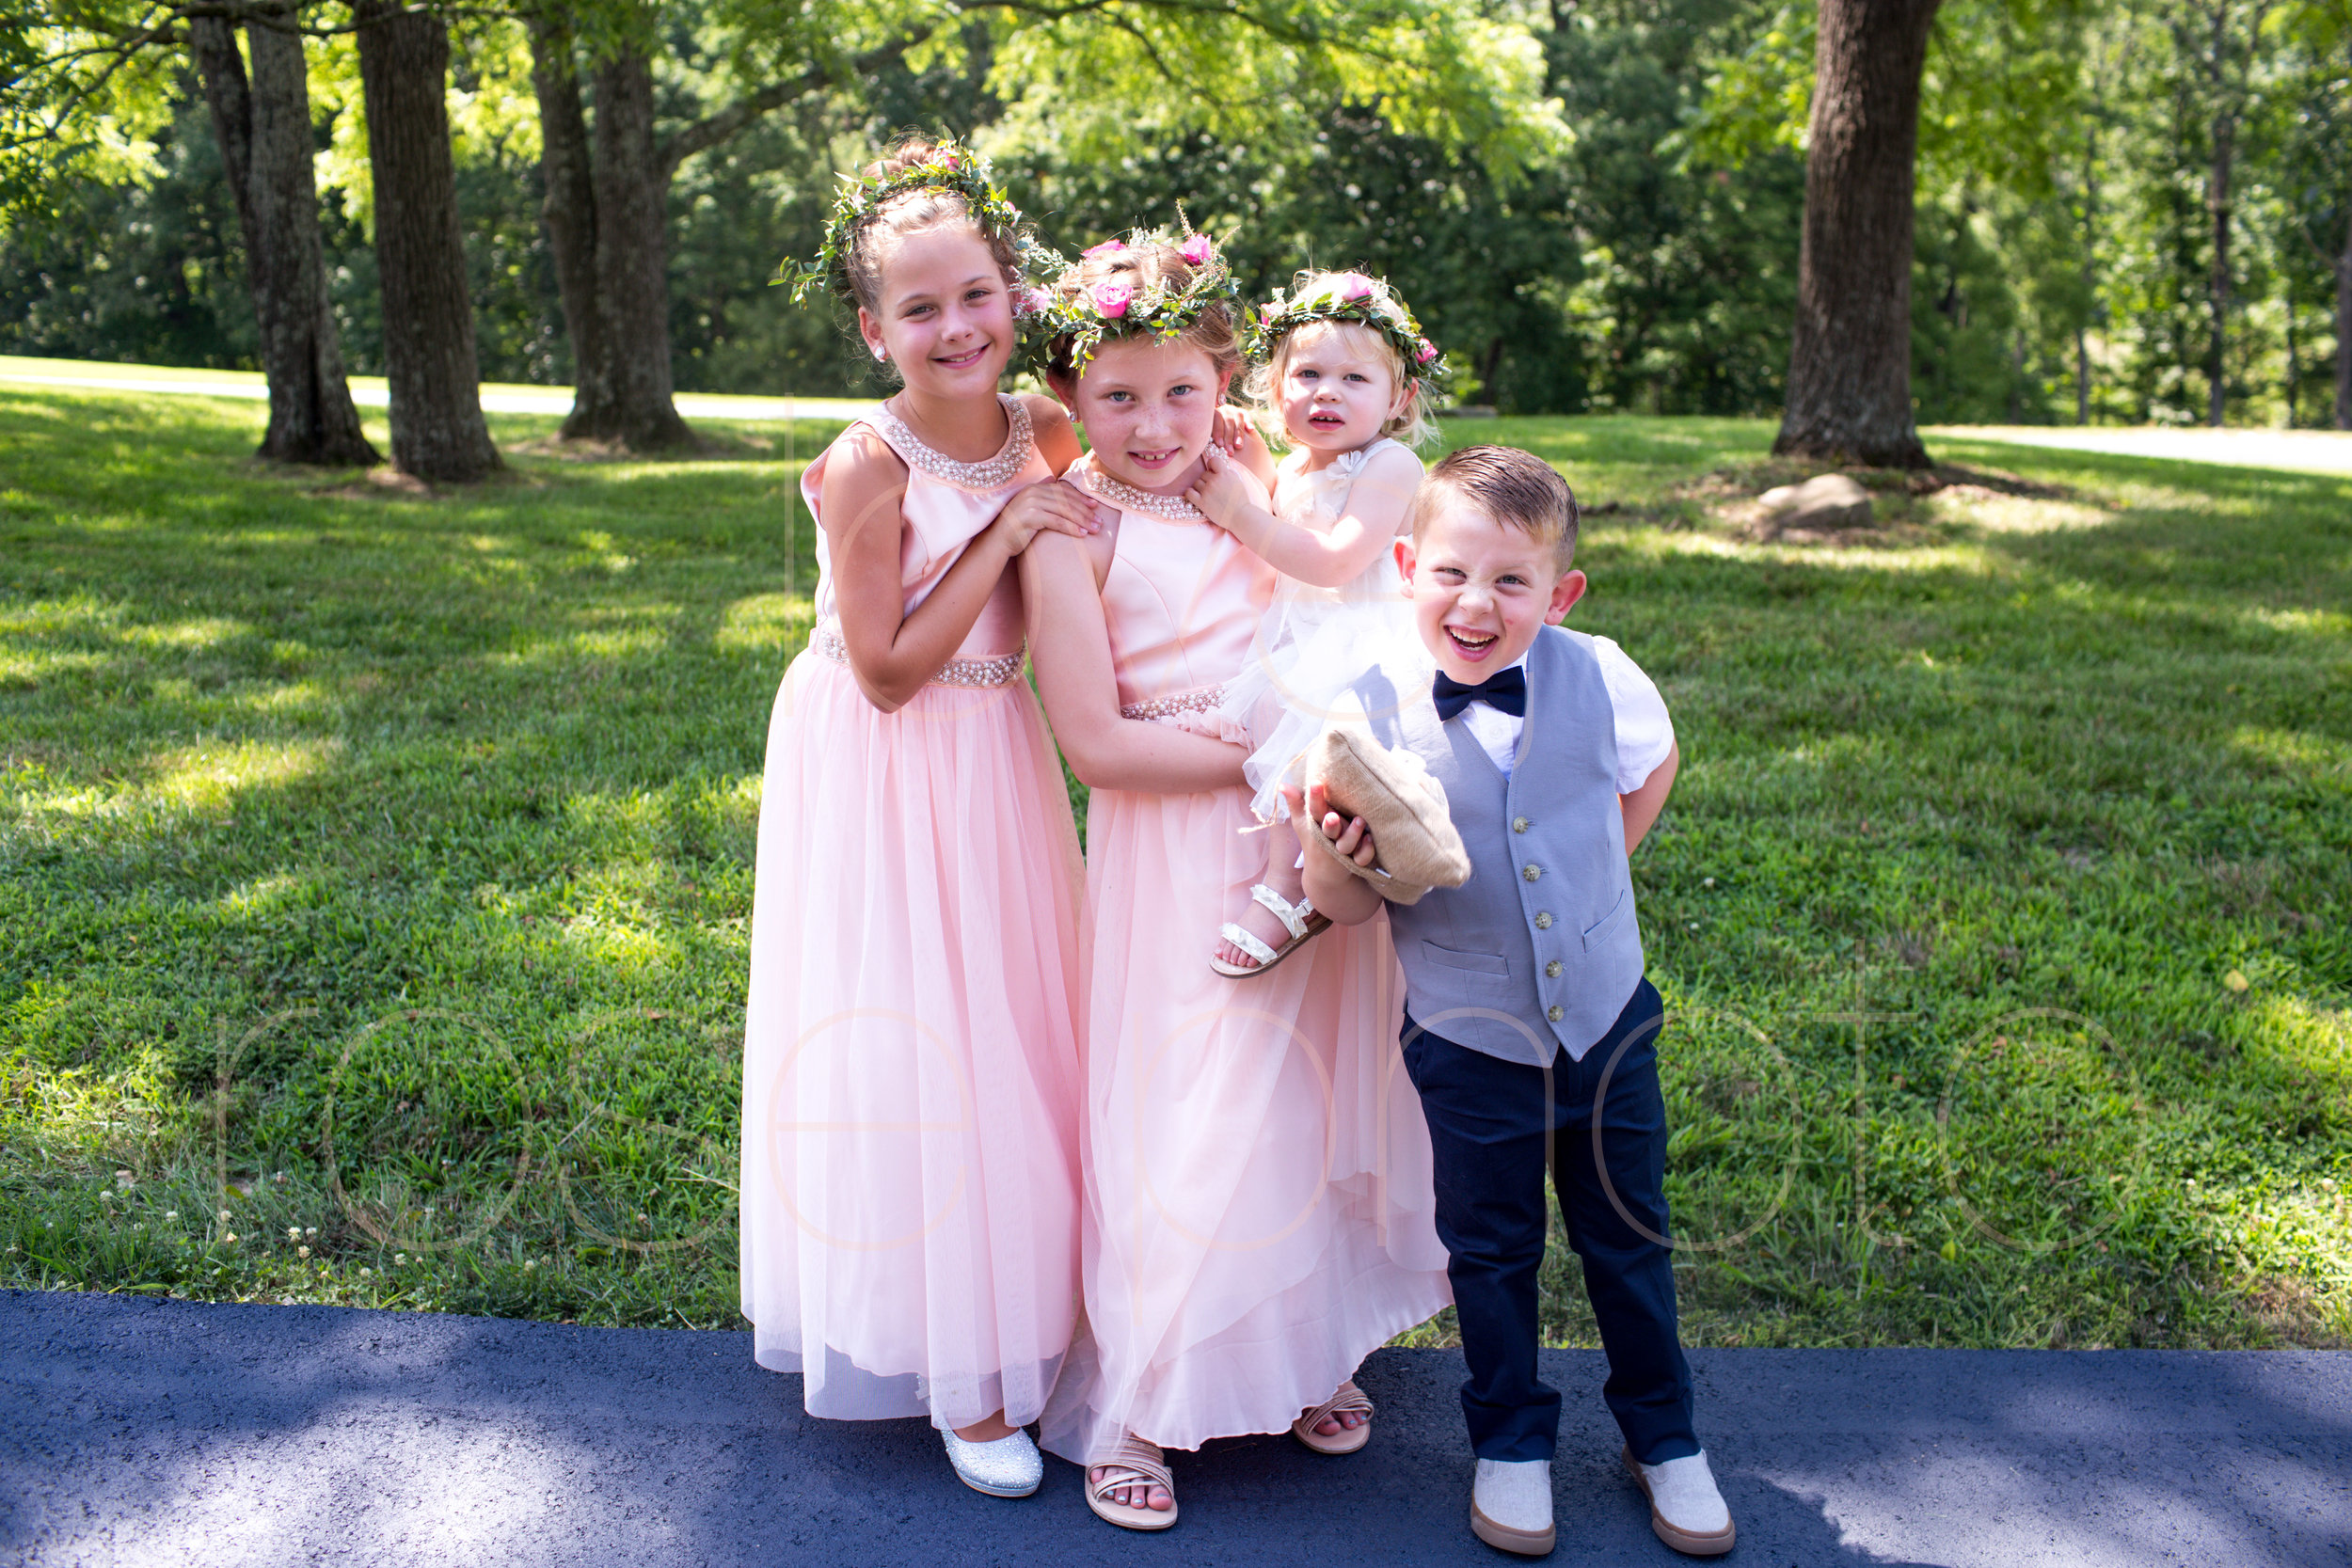 E + J Bloomington at The Wilds wedding photography pink roses blush baby blue bridesmaids dress flower girl destination photo -59.jpg